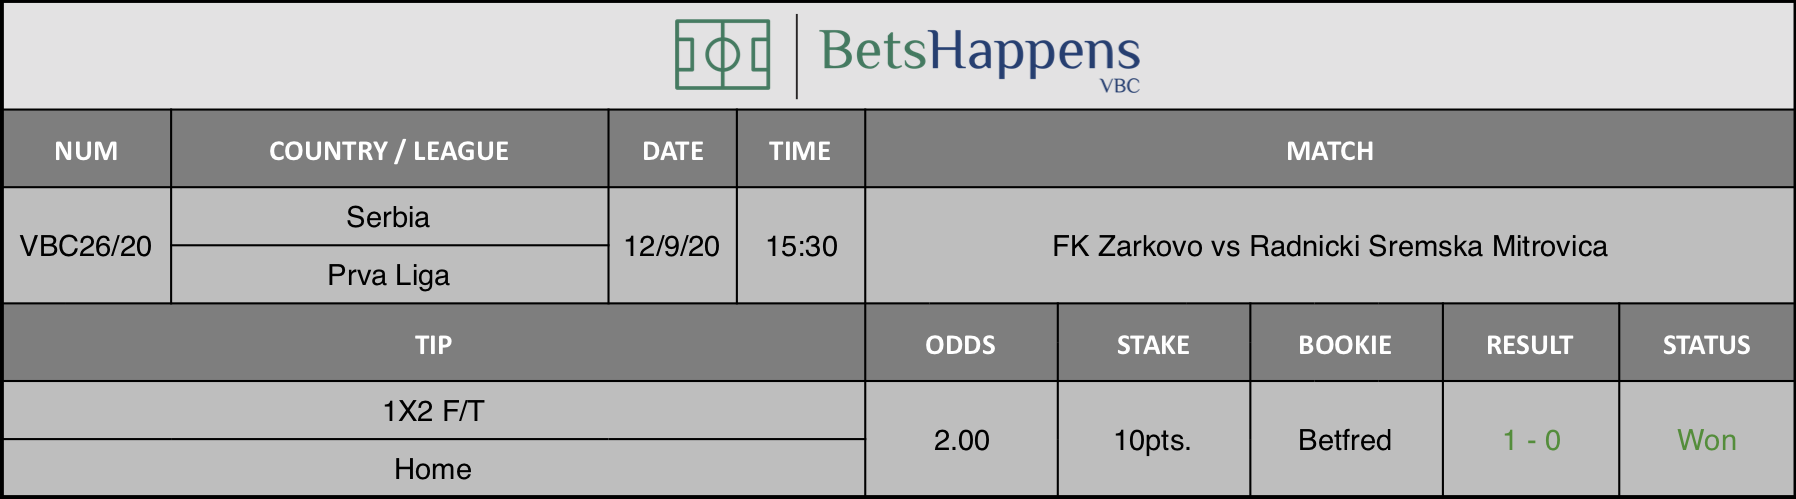 Results of our advice for the FK Zarkovo vs Radnicki Sremska Mitrovica match in which Winner F / T Home is recommended.